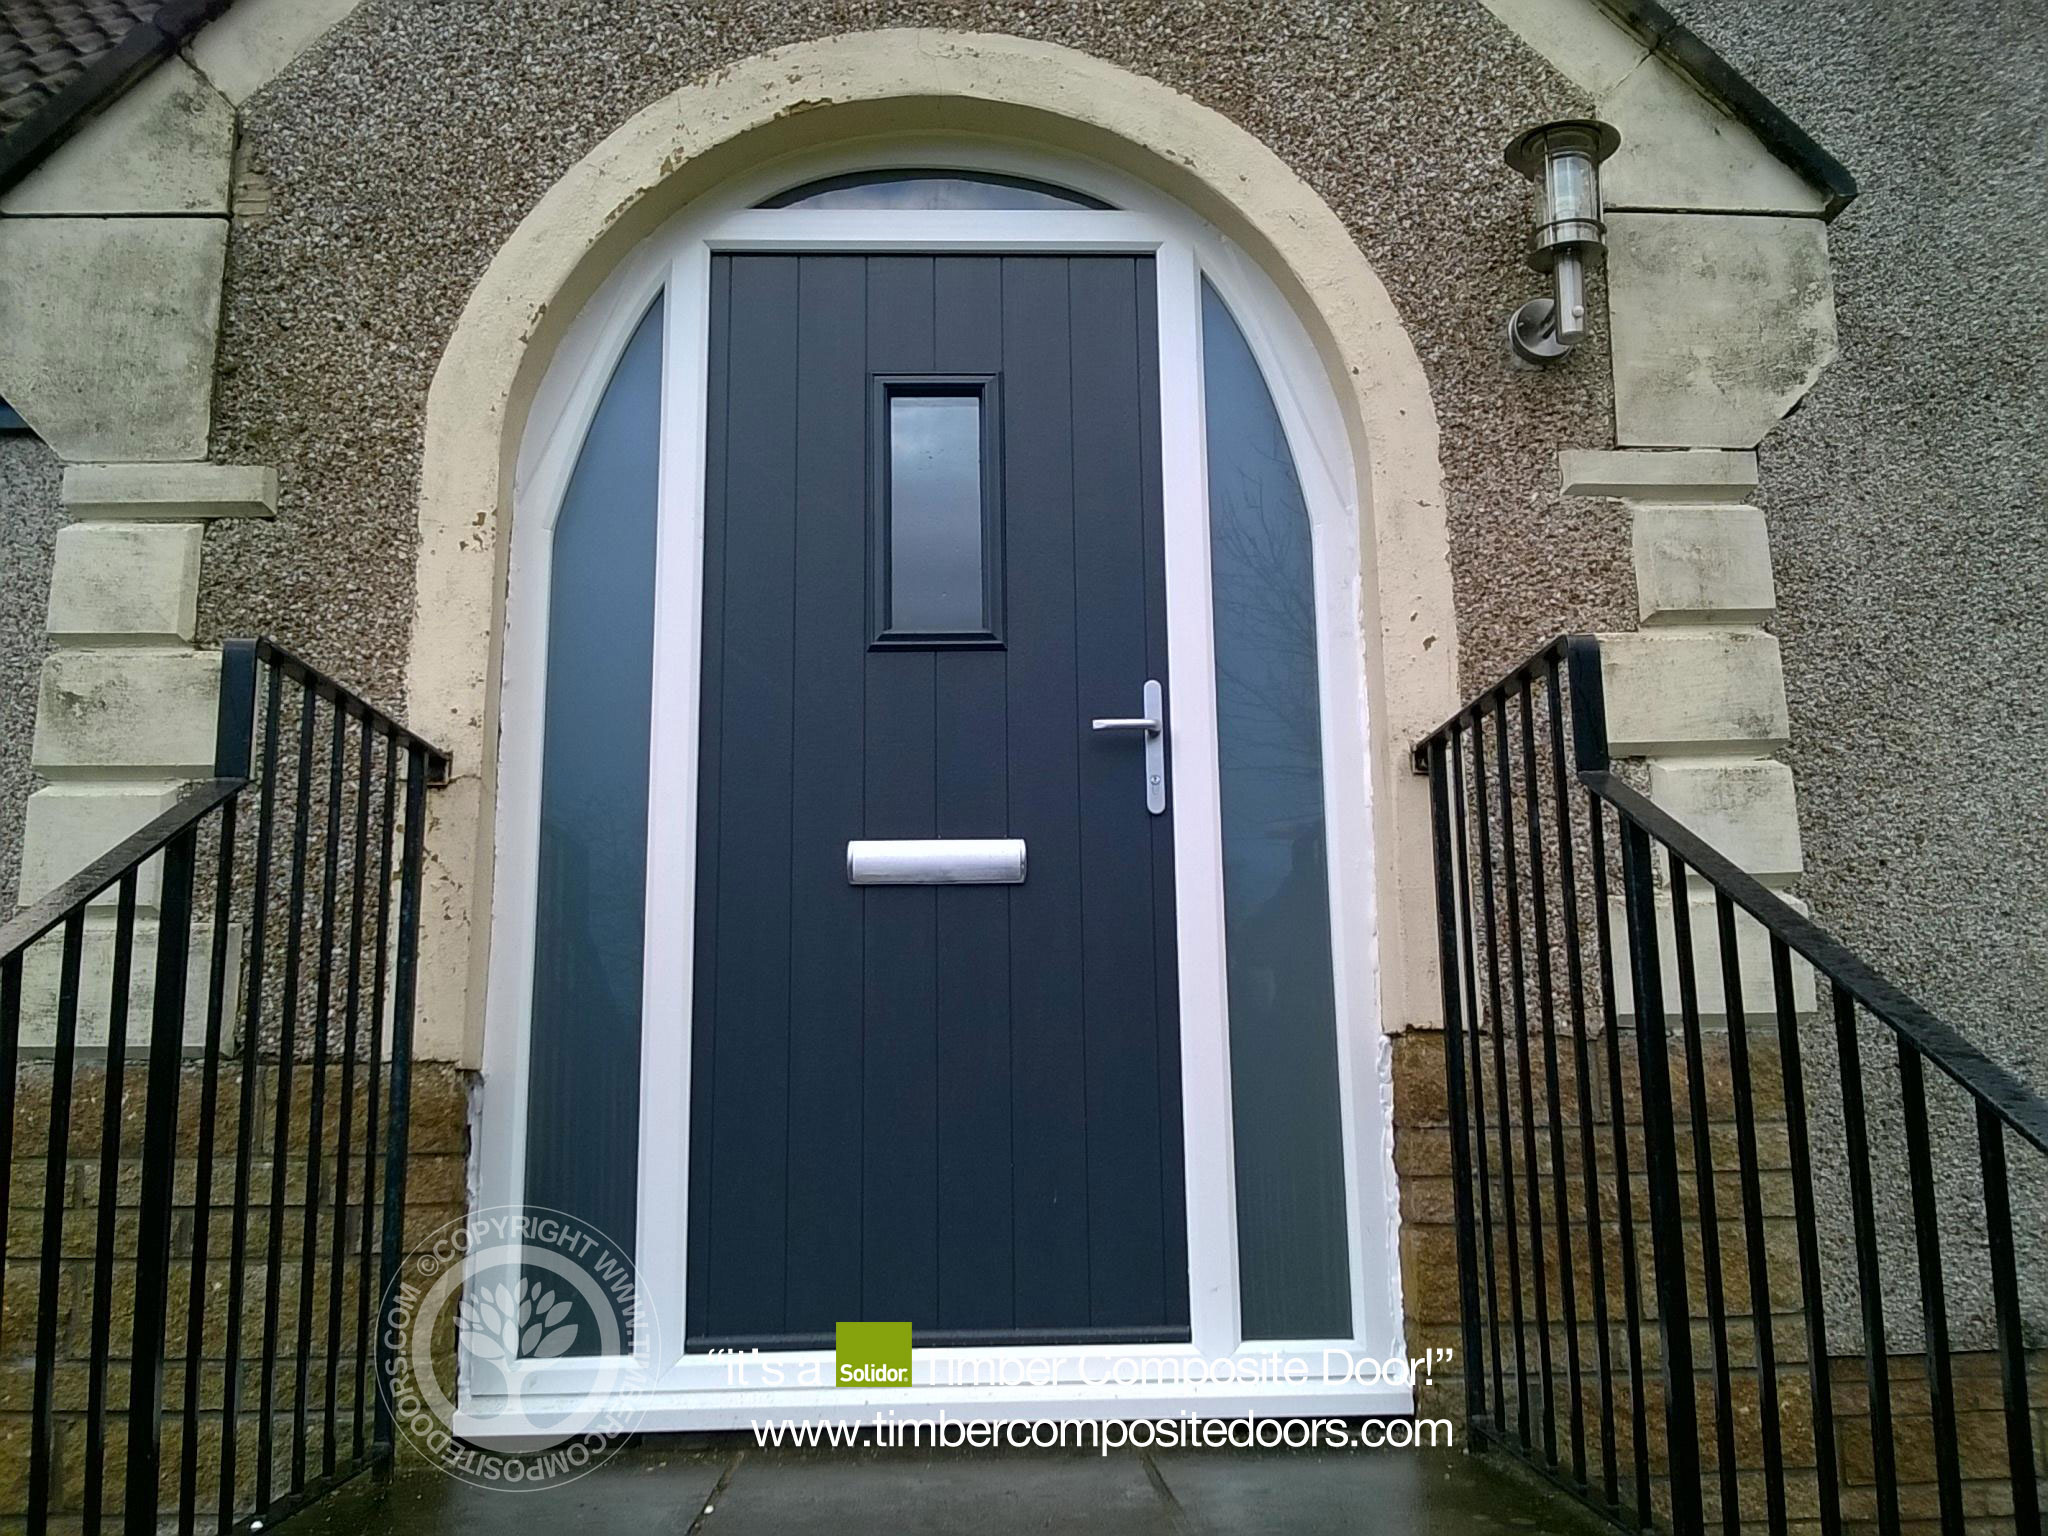 Composite Doors Falkirk \\\\\\\\\\\\\\\\\\\\\\\\\\\\\\\\\\\\\\\\\\\\\\\\\\\\\\\\\\\\\\\\u0026 Wickes Composite Front Doors Door Weatherboards U Dualglaze ... & Jenkins Doors Falkirk u0026 Rembrand Timber Ltd